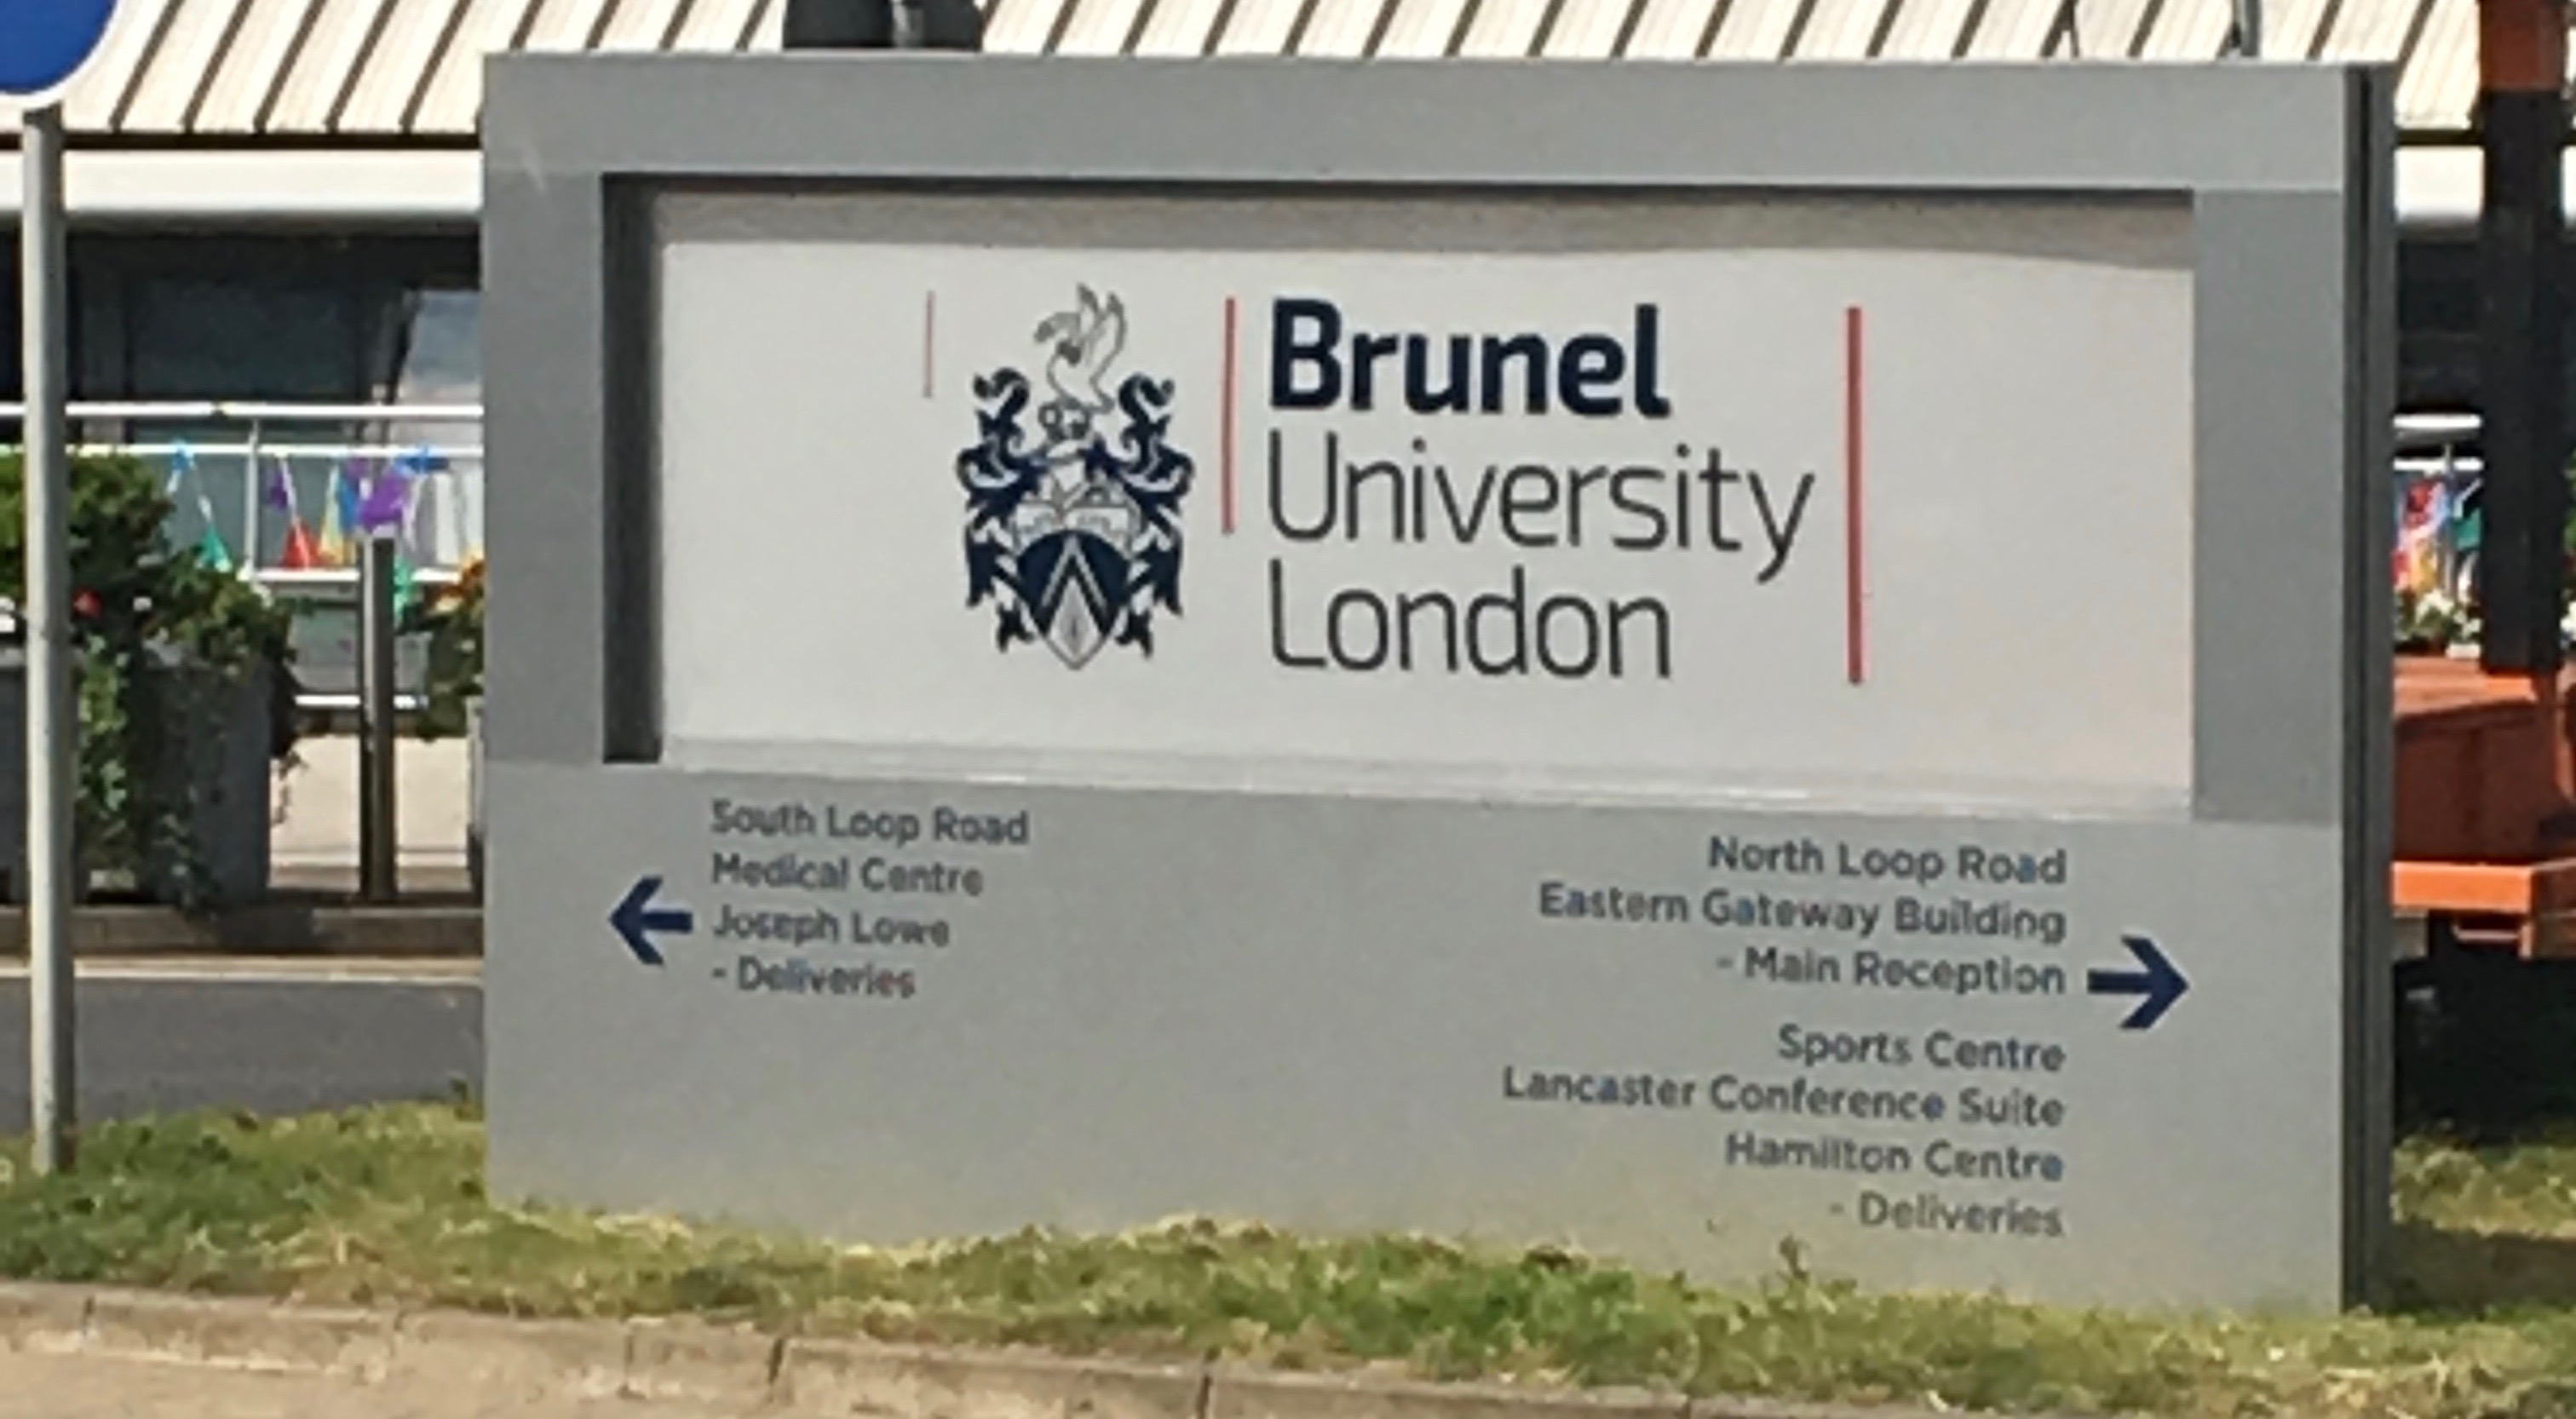 Brunel Physiotherapy Lecture – A Round Up